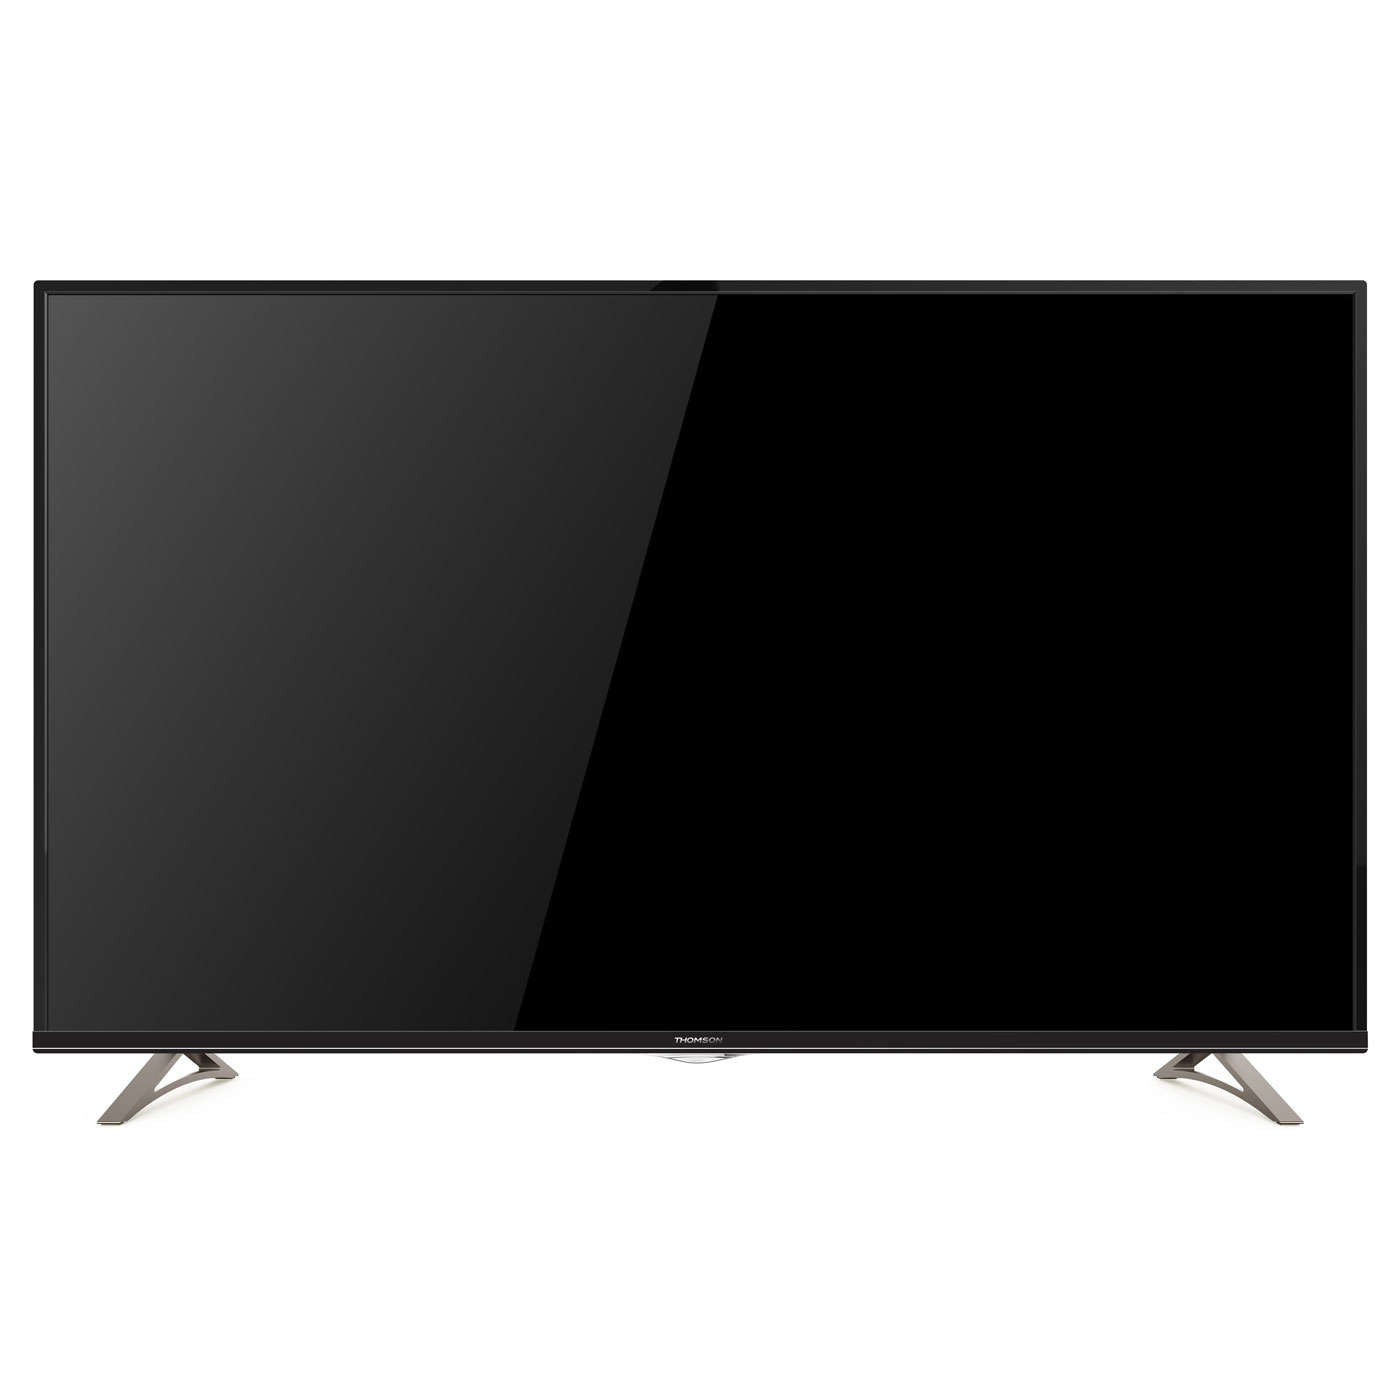 Meuble Support Tv Blanc Thomson 40ub6416 - Tv Thomson Sur Ldlc.com